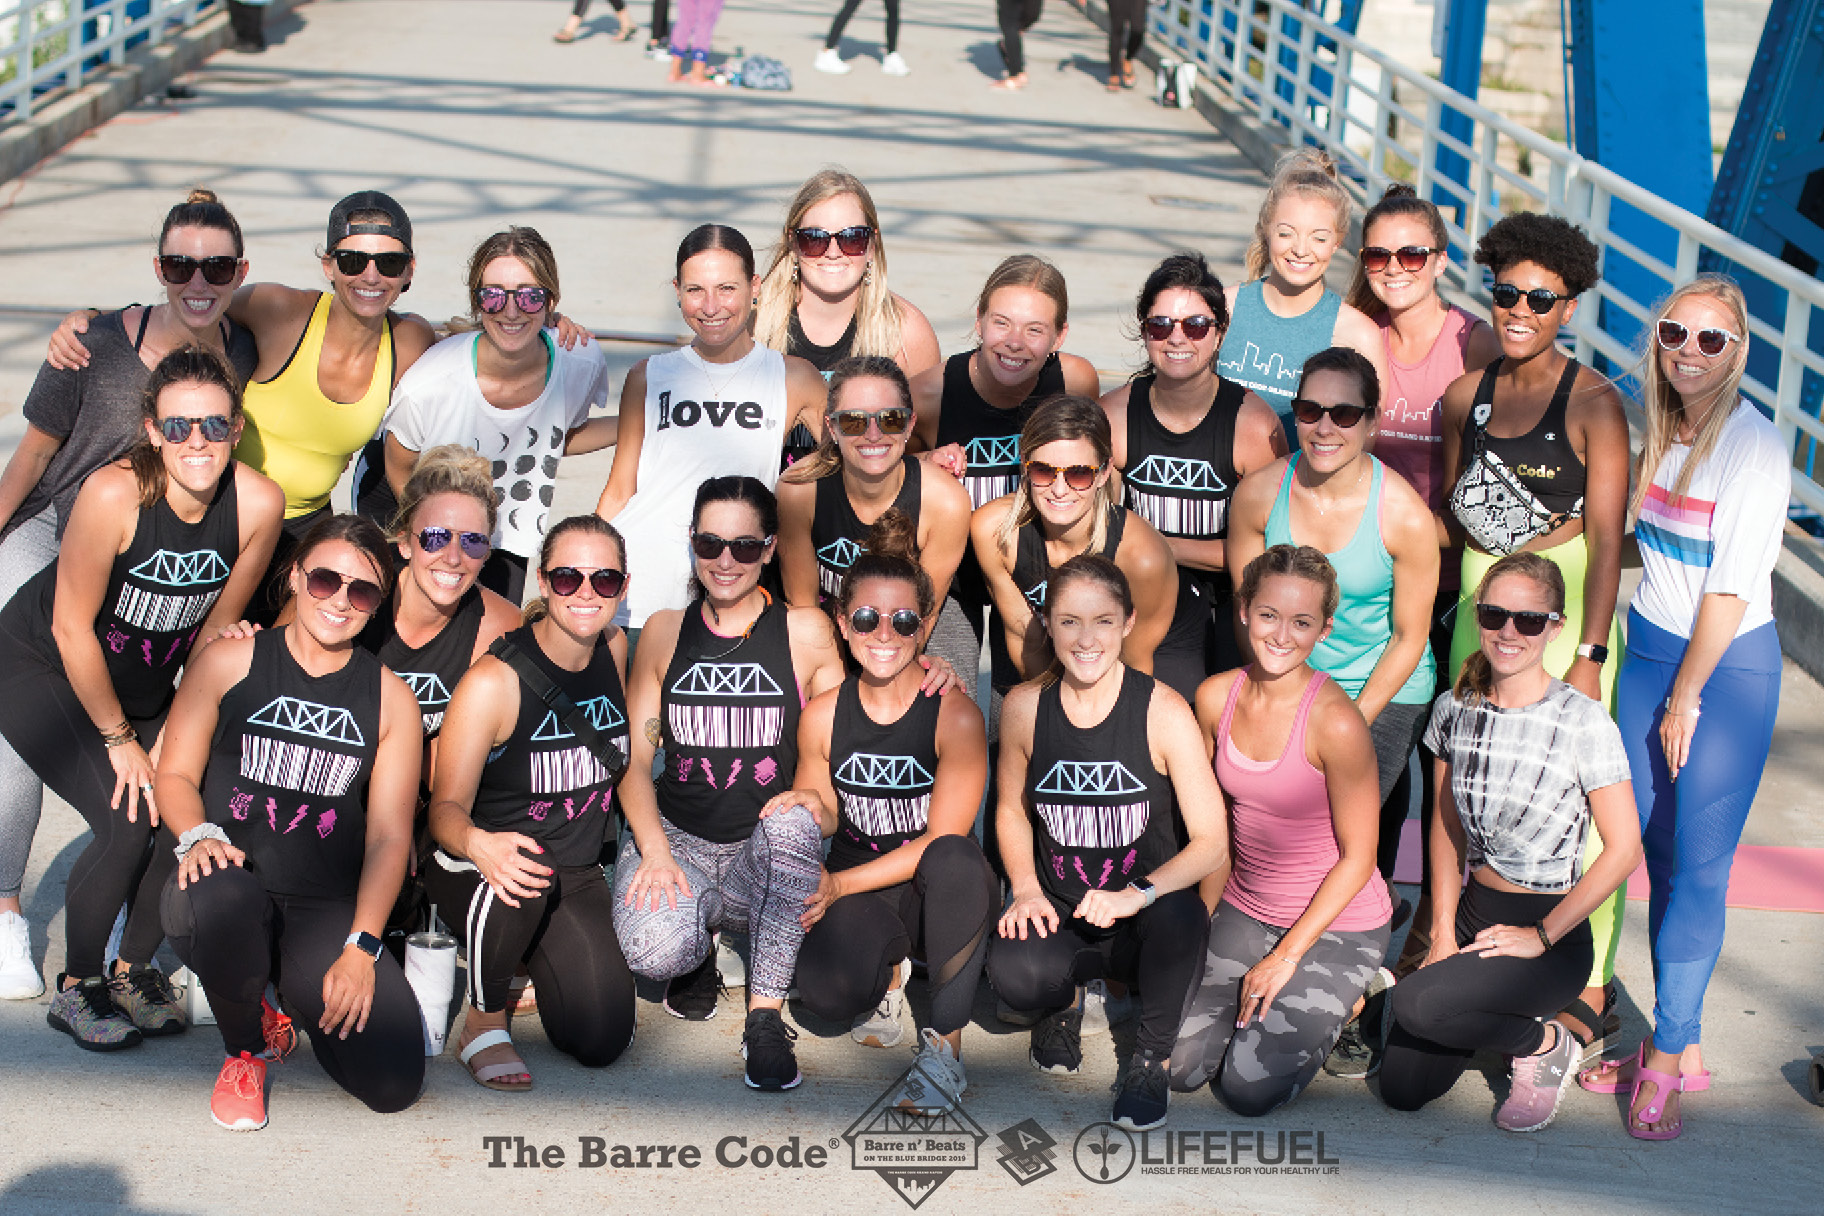 190805_the_barre_code_lifefuel_89.jpg